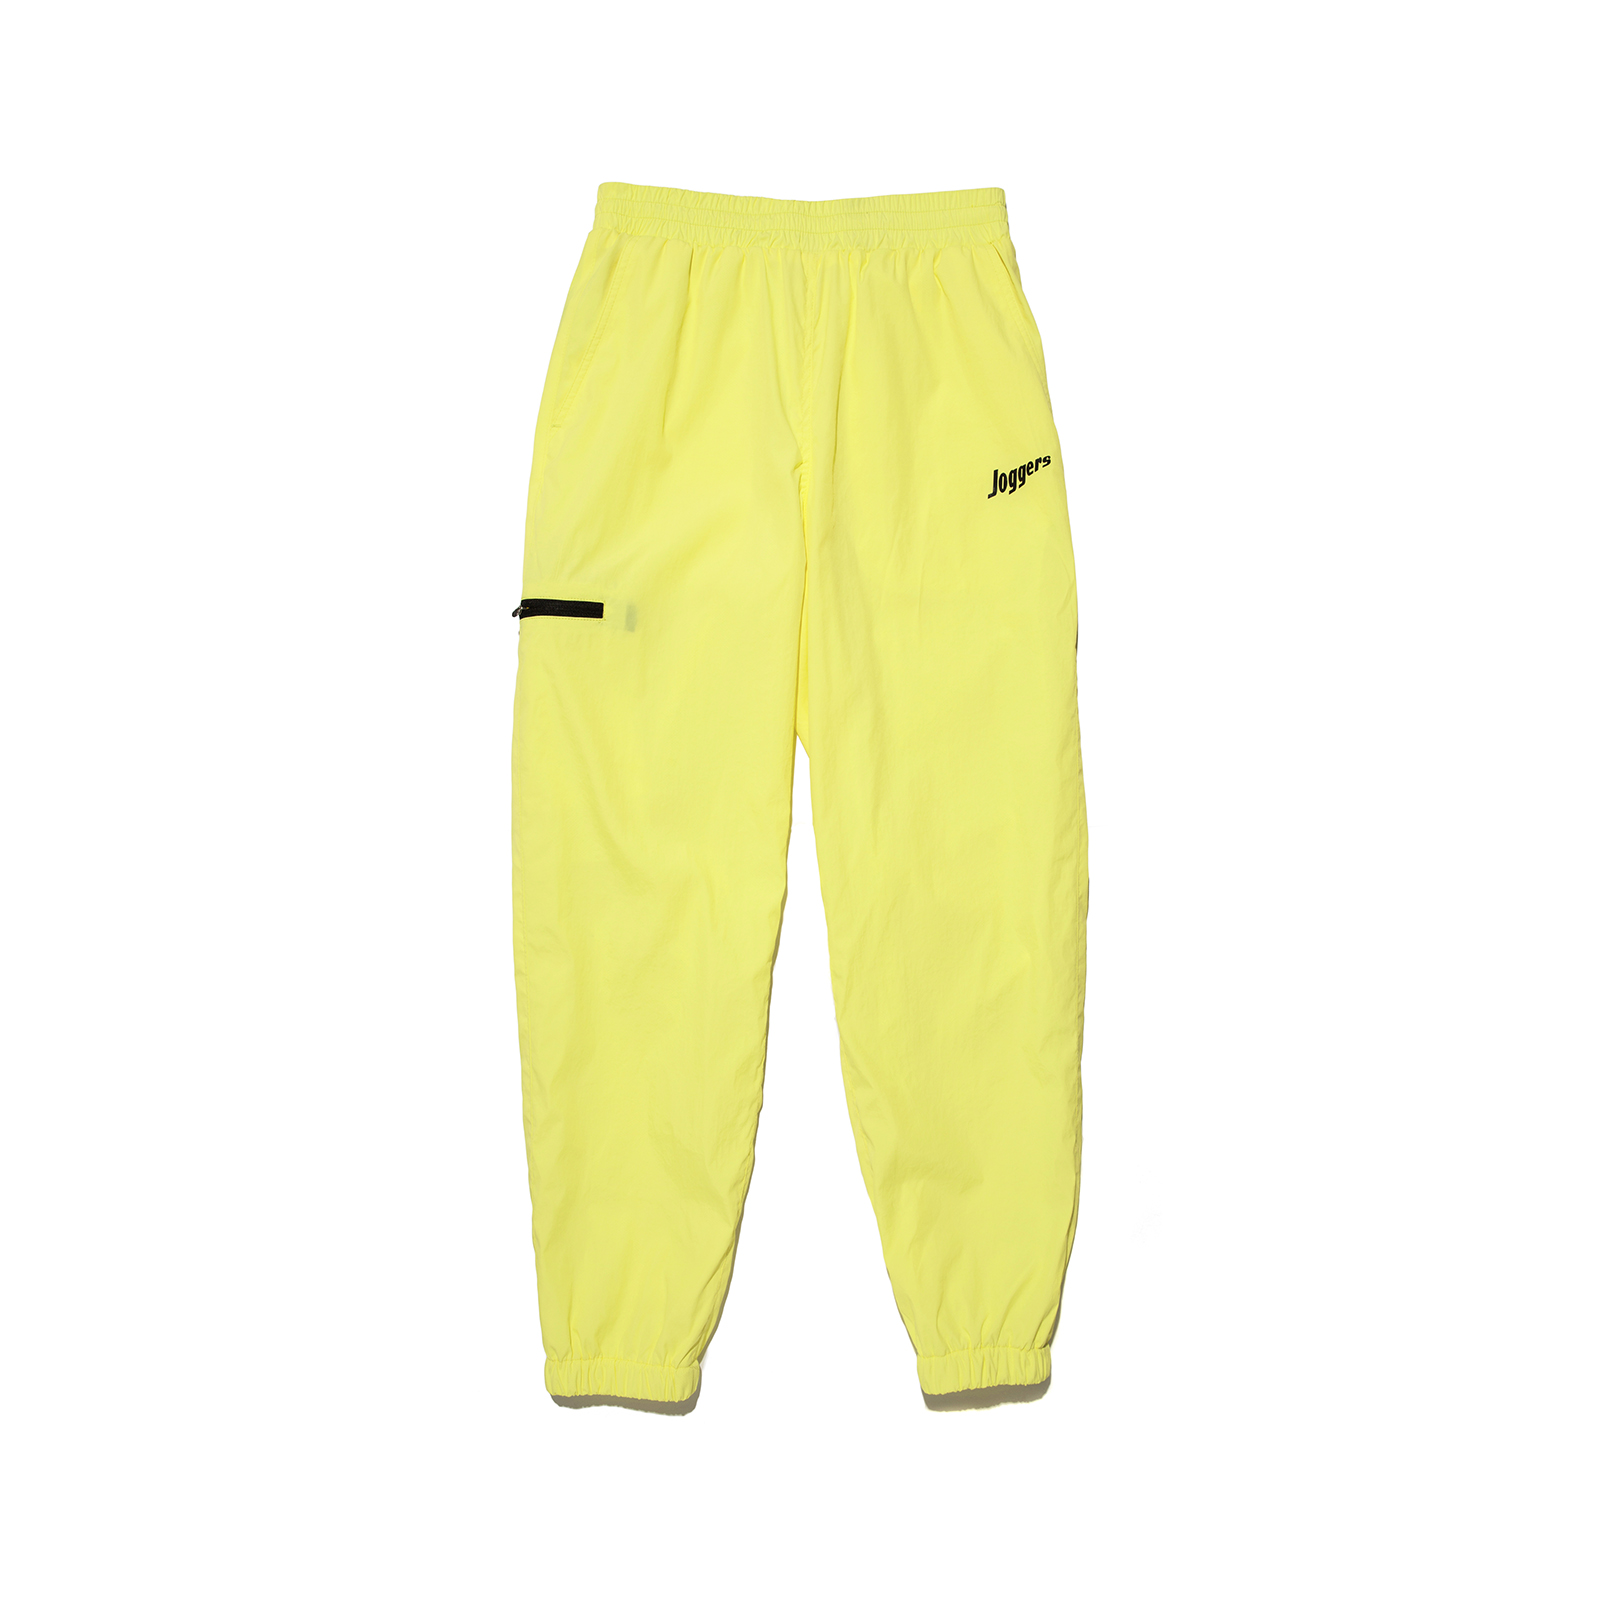 [위캔더스] JOGGERS PANTS L.YELLOW